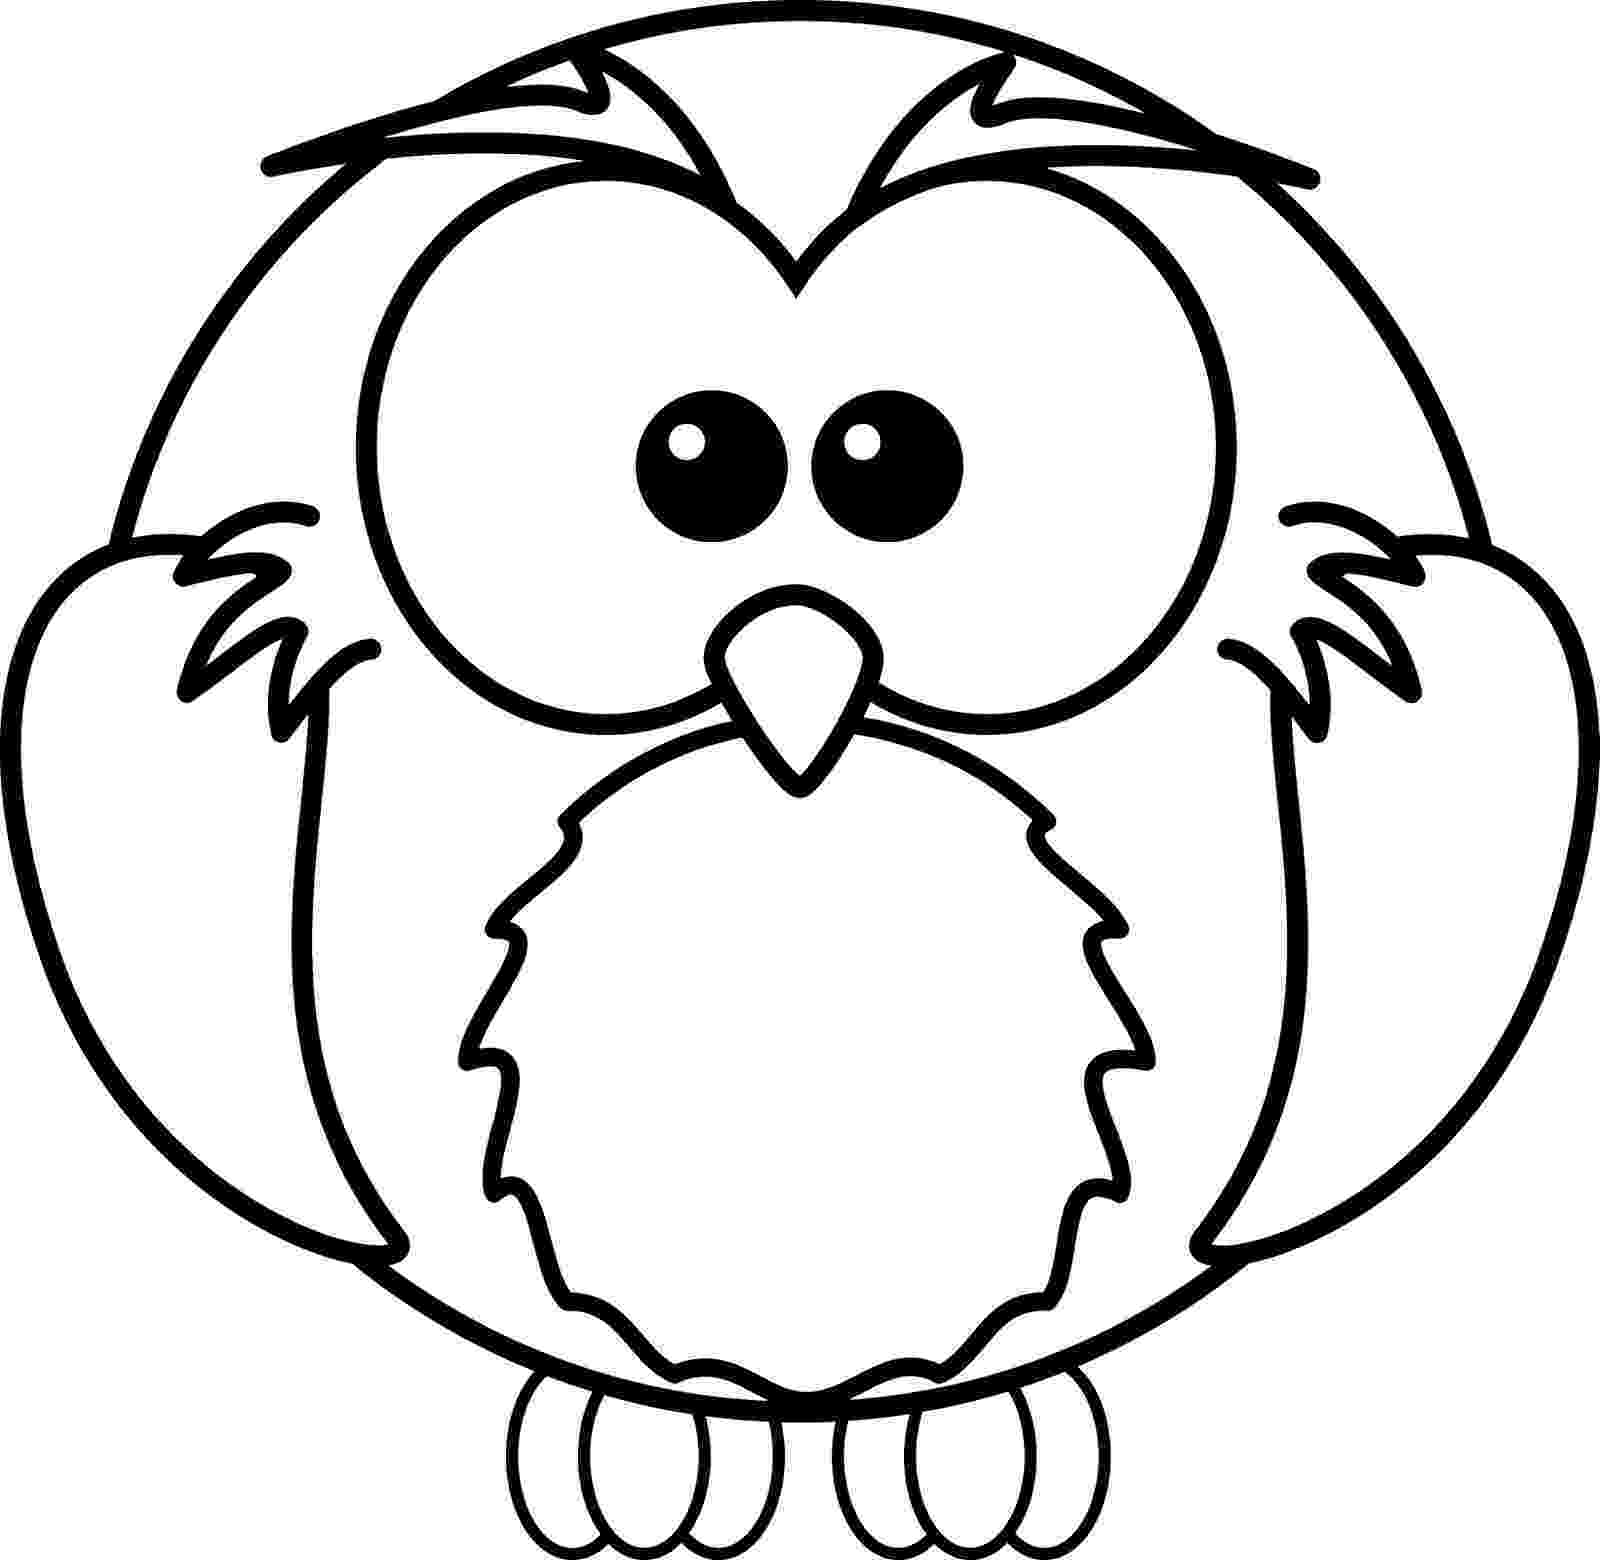 owl color page cute owl coloring page free printable coloring pages color owl page